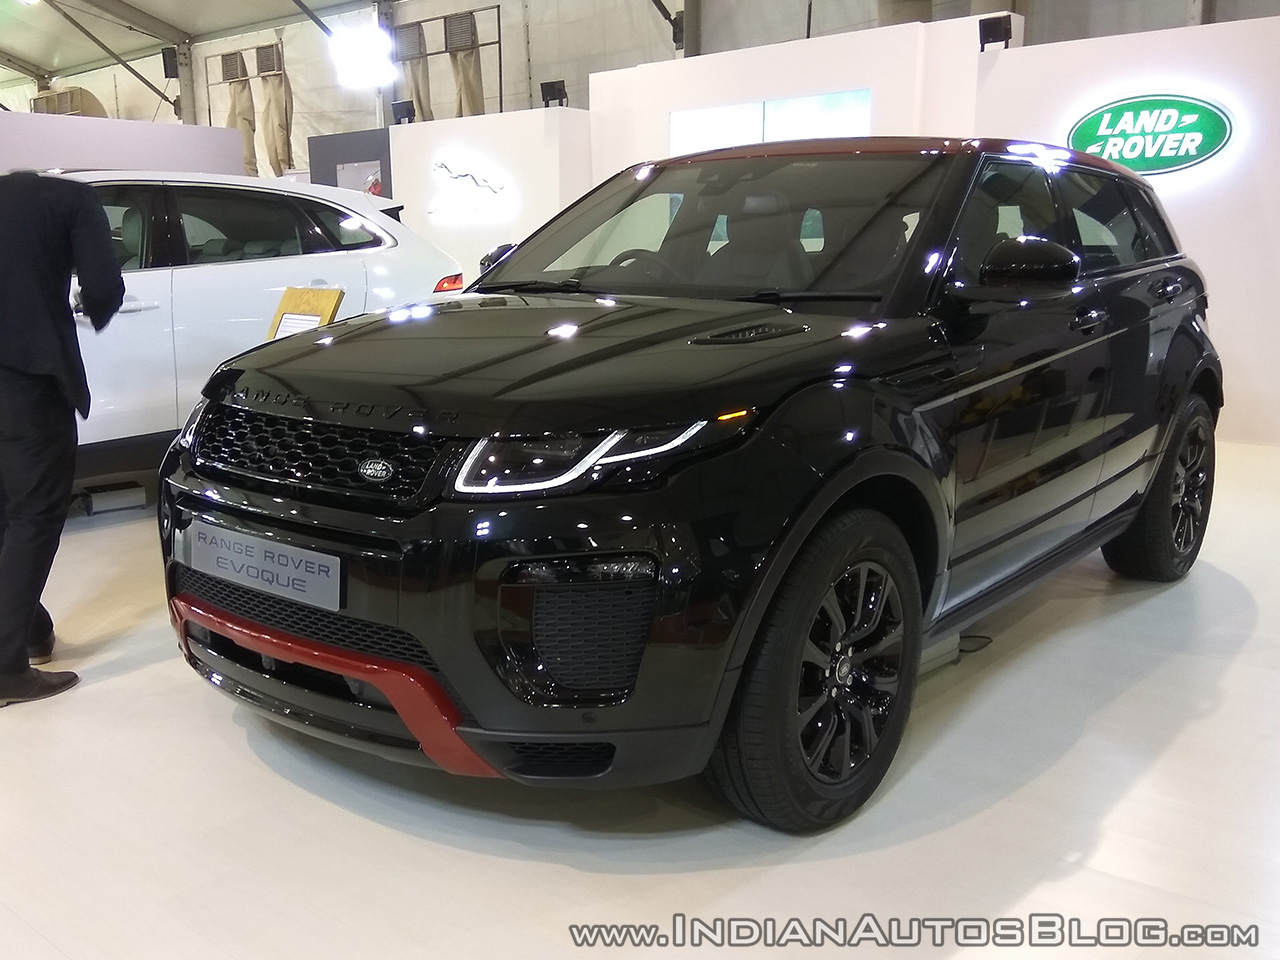 Range Rover Evoque front three quarters at Autocar Performance Show 2017